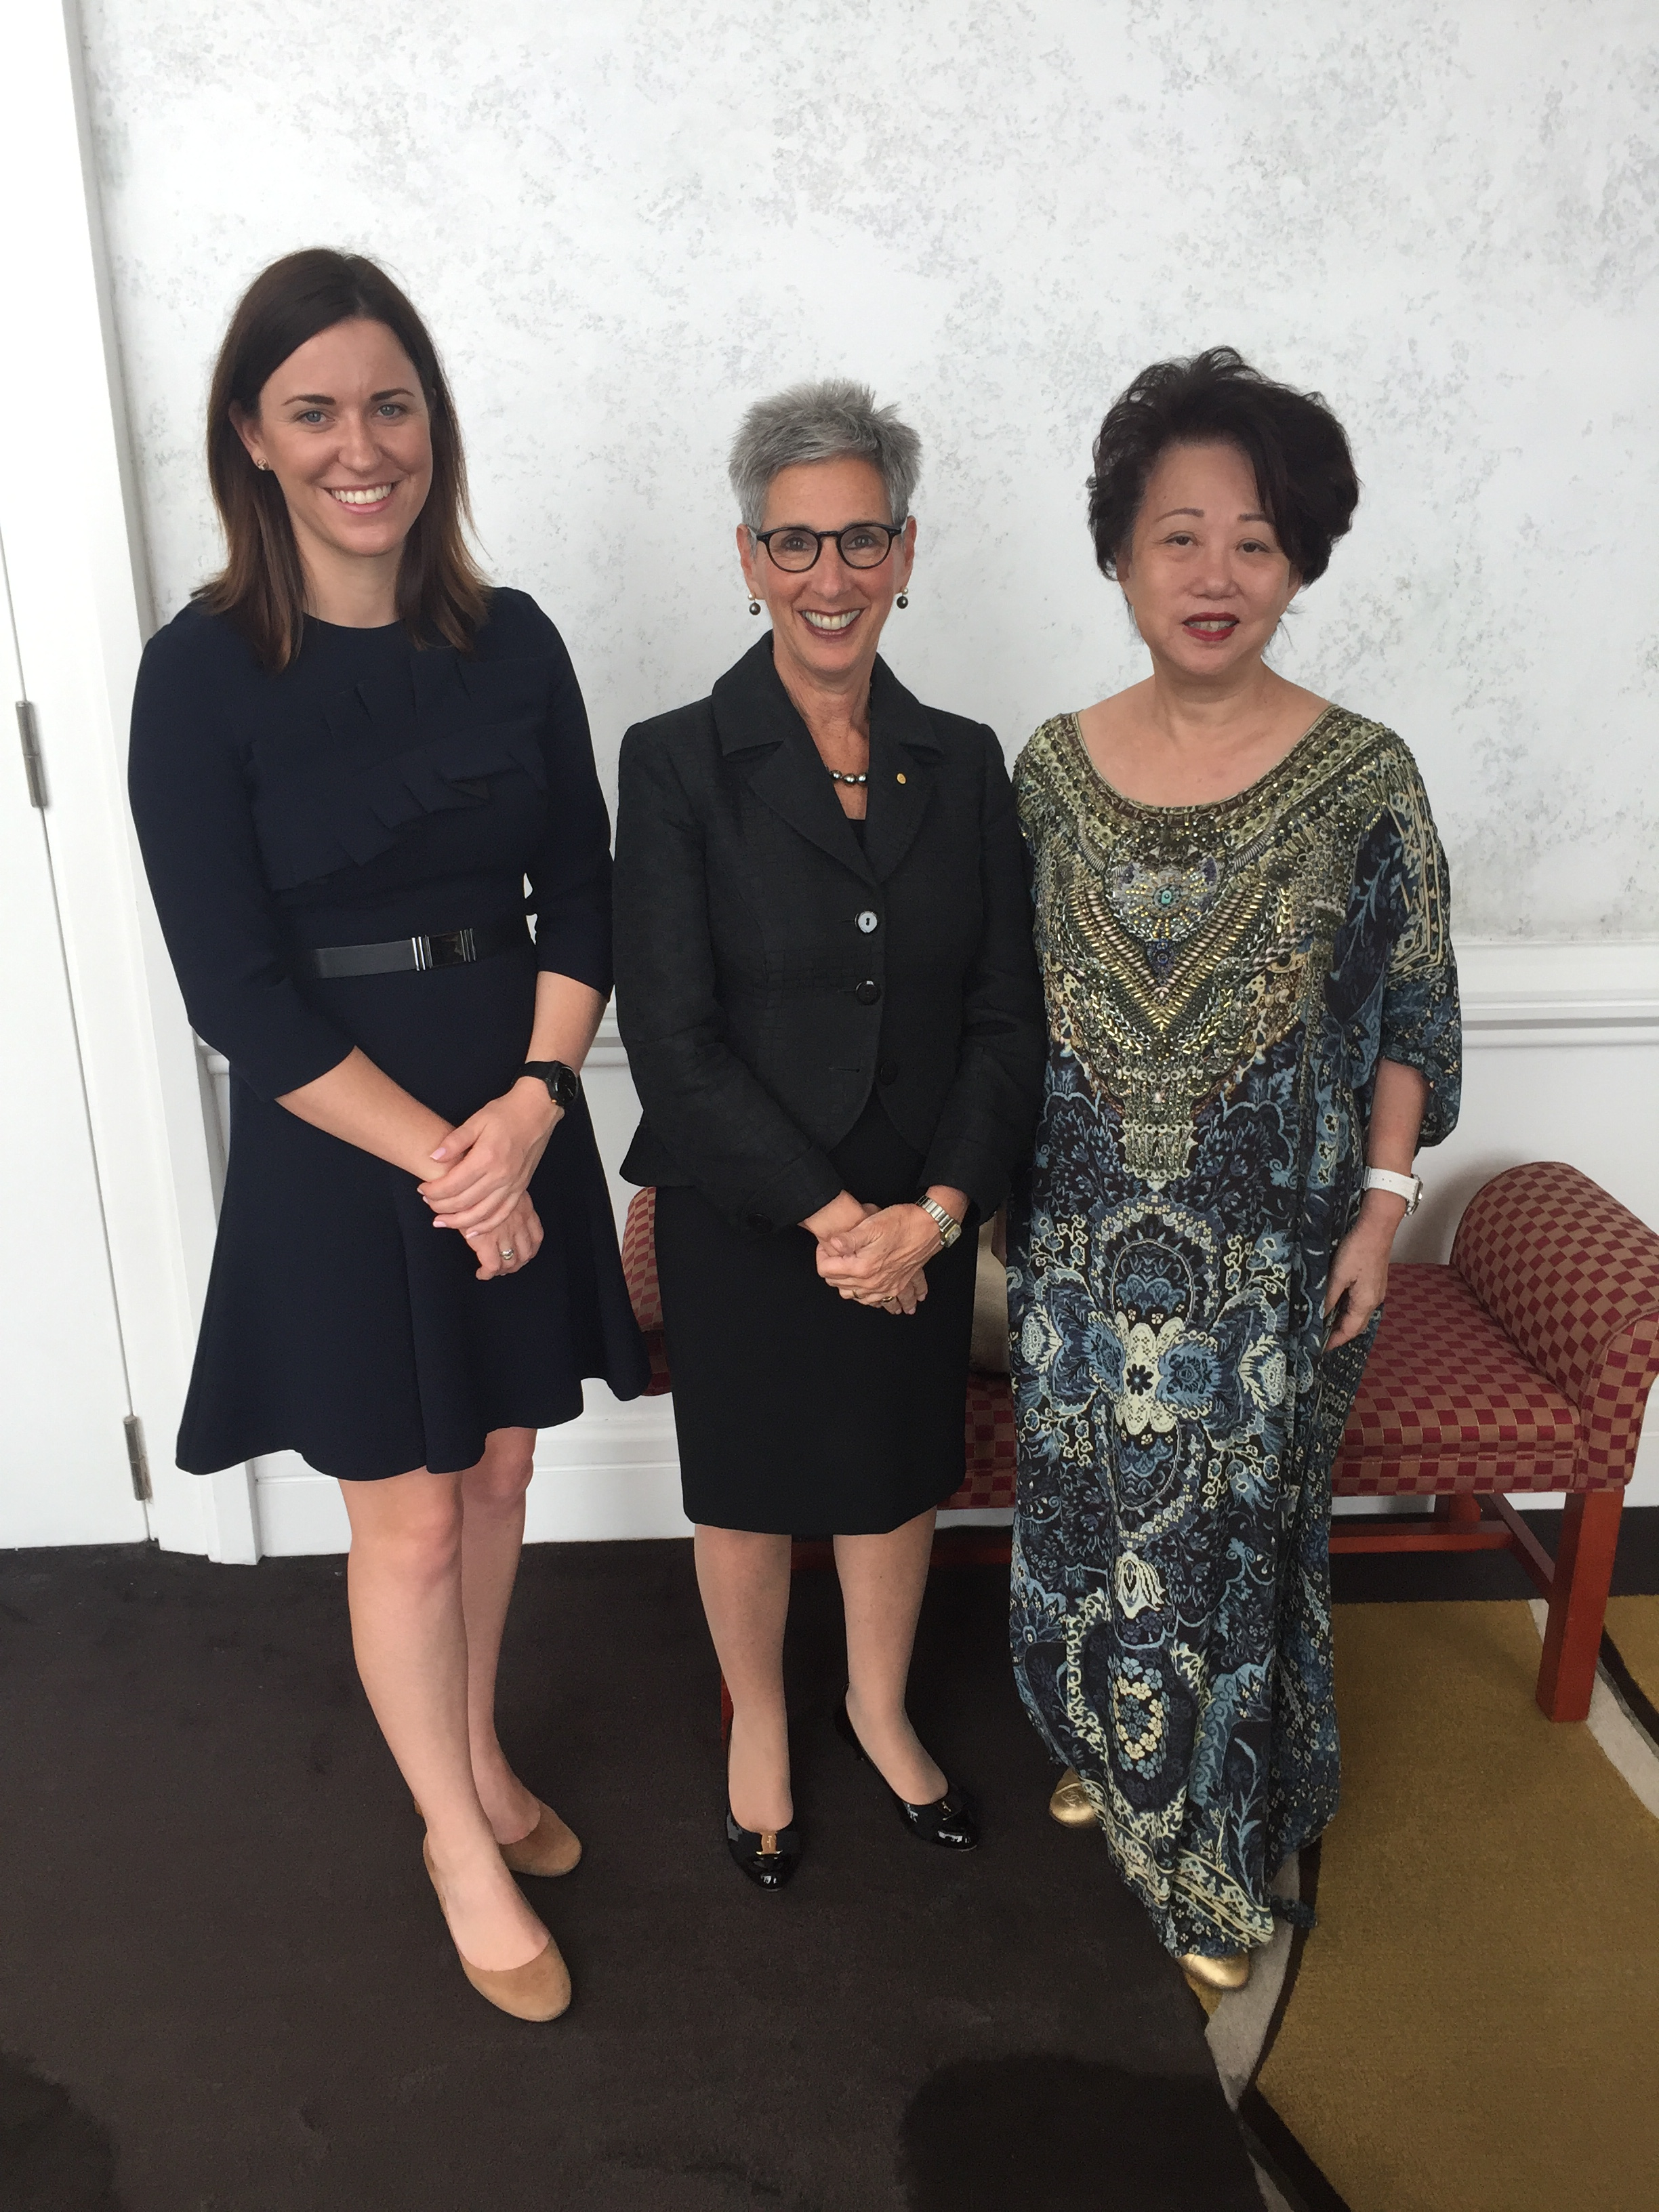 Erin Watson-Lynn (Asialink, Director Diplomacy) Jannie Chan (Women in Leadership Video Series participant) and The Hon. Linda Dessau AC, Governor of Victoria.